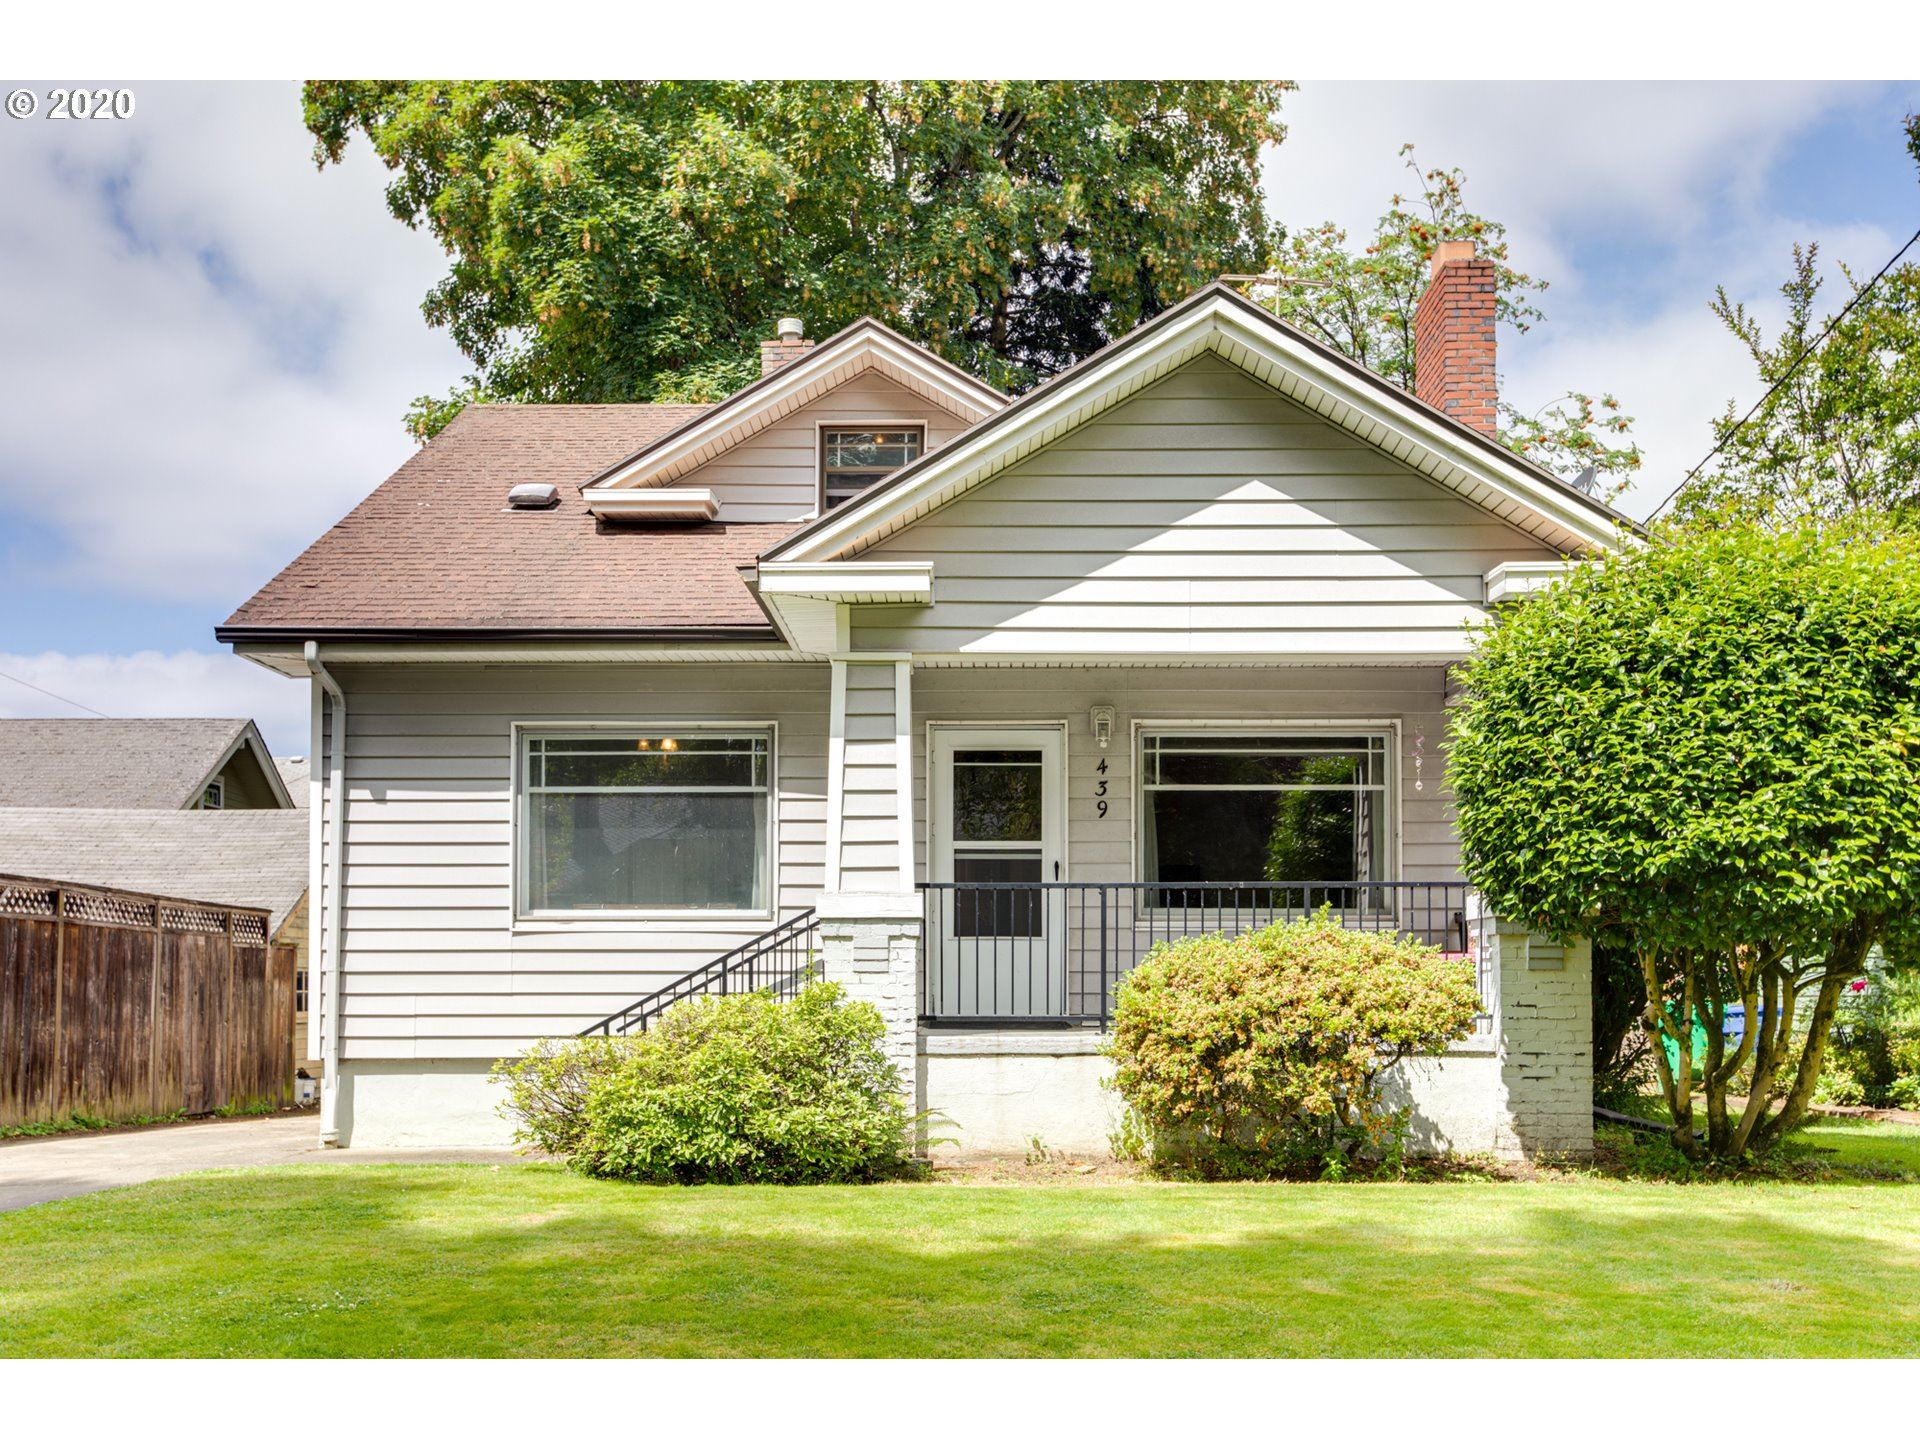 439 SE 33RD AVE, Portland, OR 97214 - MLS#: 20286198